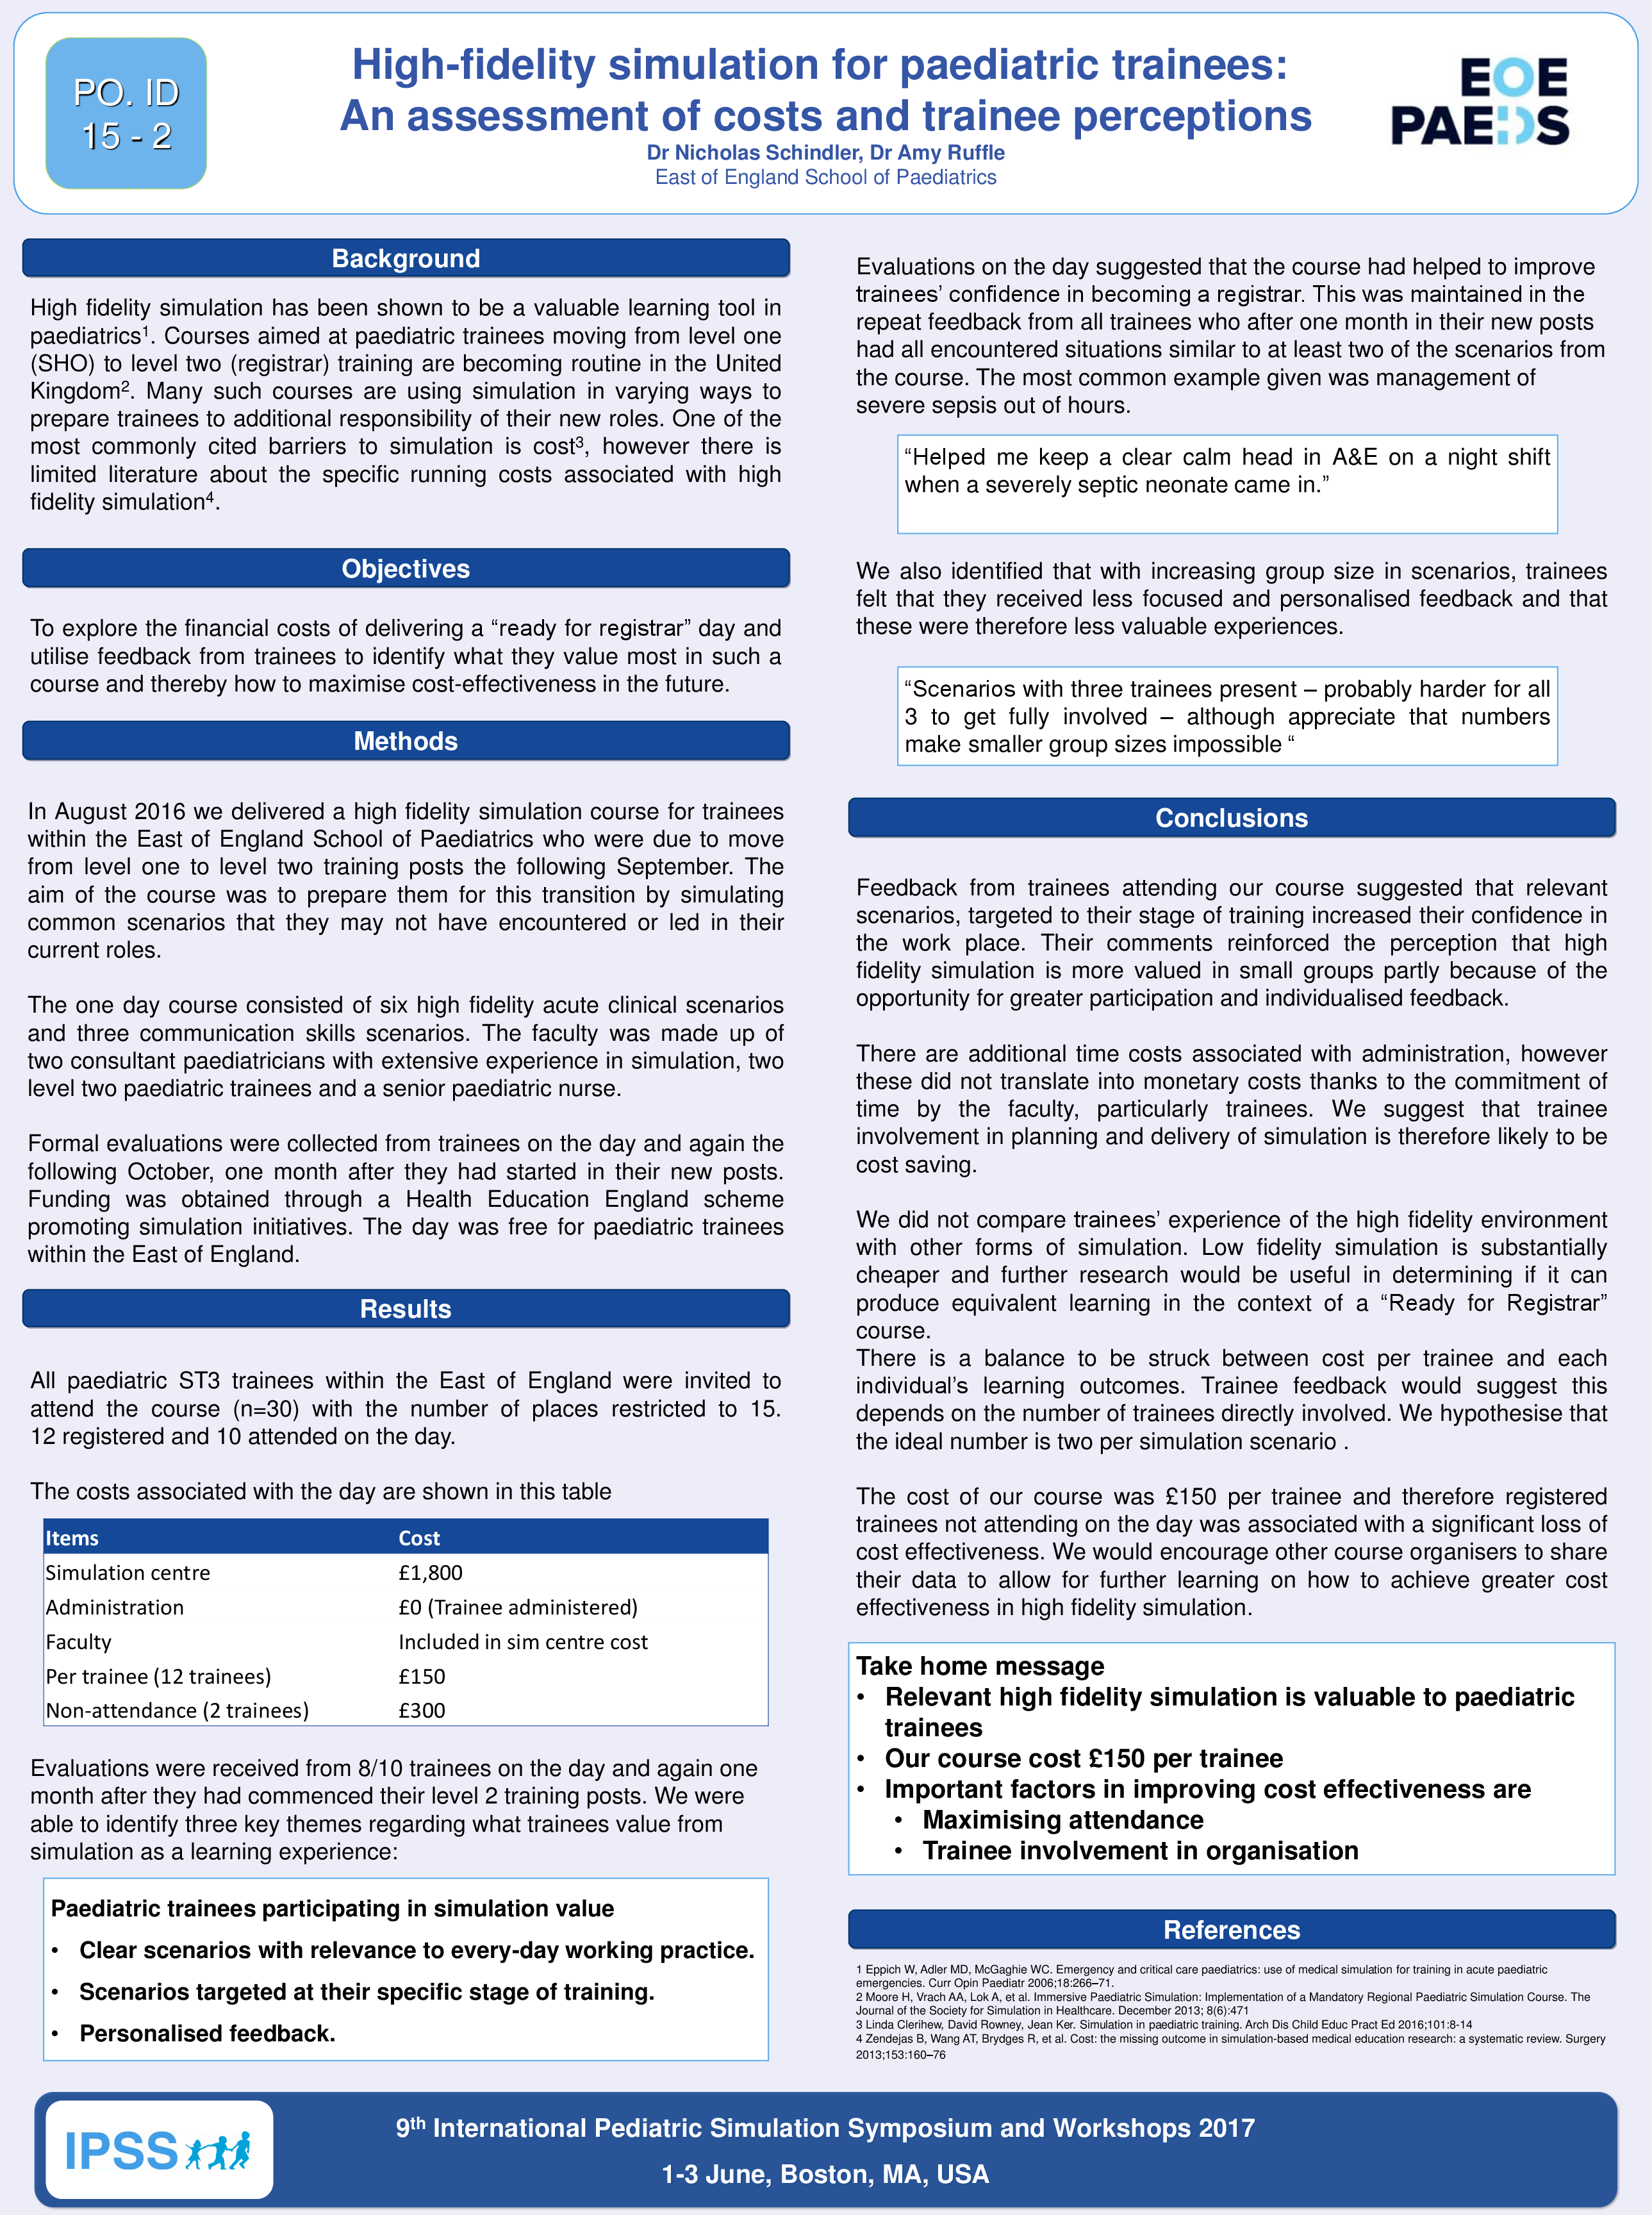 Converted_70096860396e11e7a27ac70f202791cc-high-fidelity_simulation_for_paediatric_trainees._an_assessment_of_costs_and_trainee_perceptions.